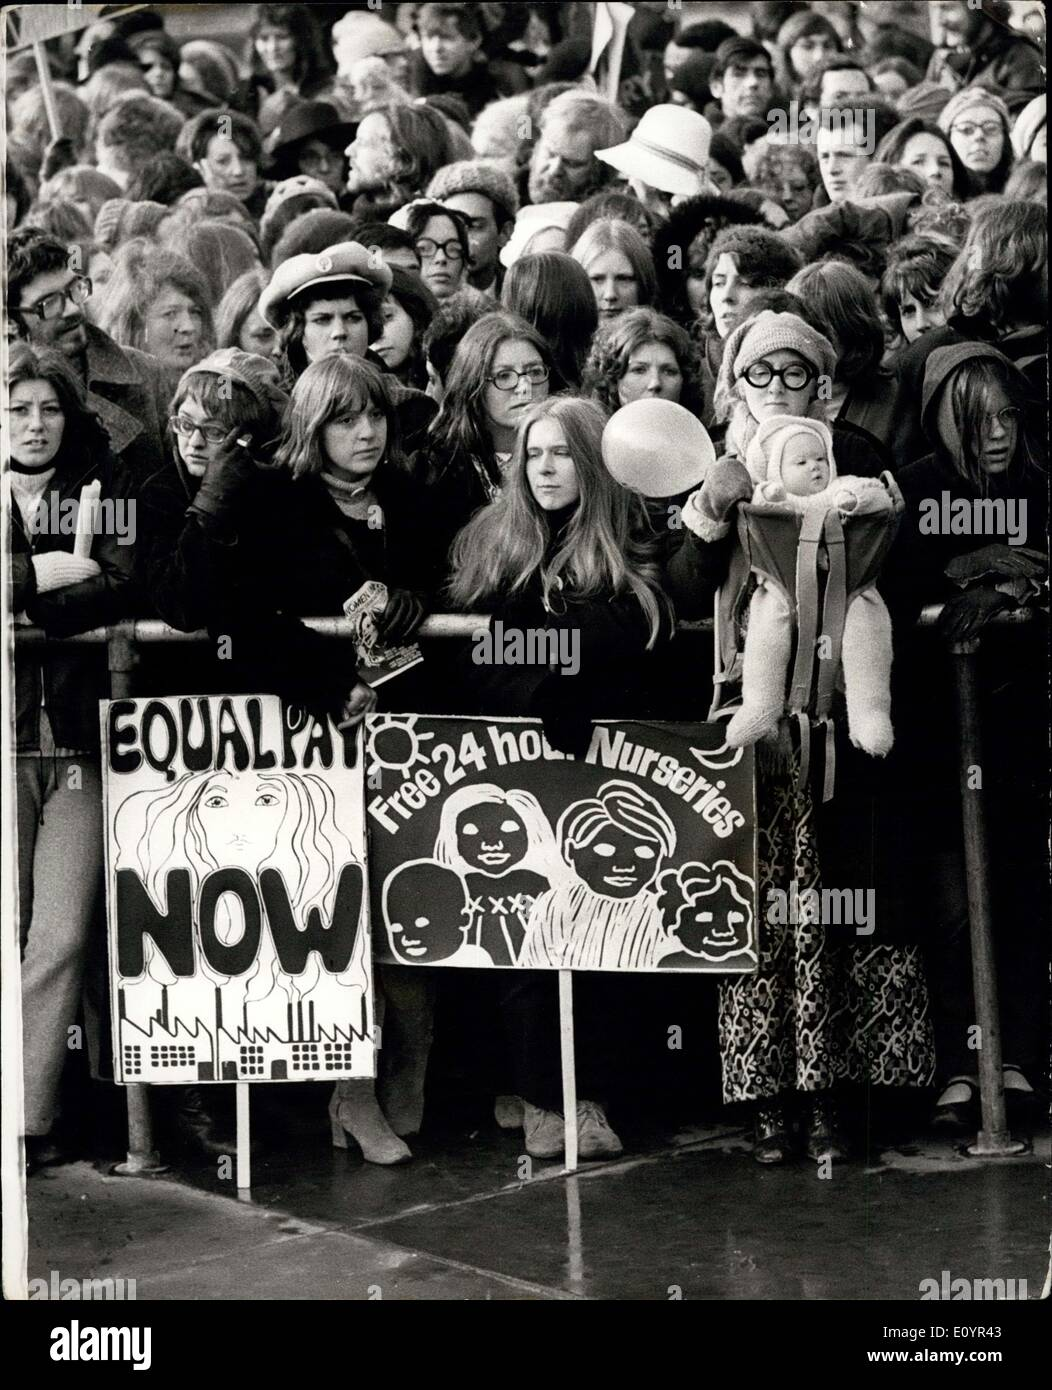 essay on womens liberation movement The second wave of women's movement which is also known as feminist movement or the liberation movement of women in the usa began during the early years of 1960s and lasted throughout the late 1980s.